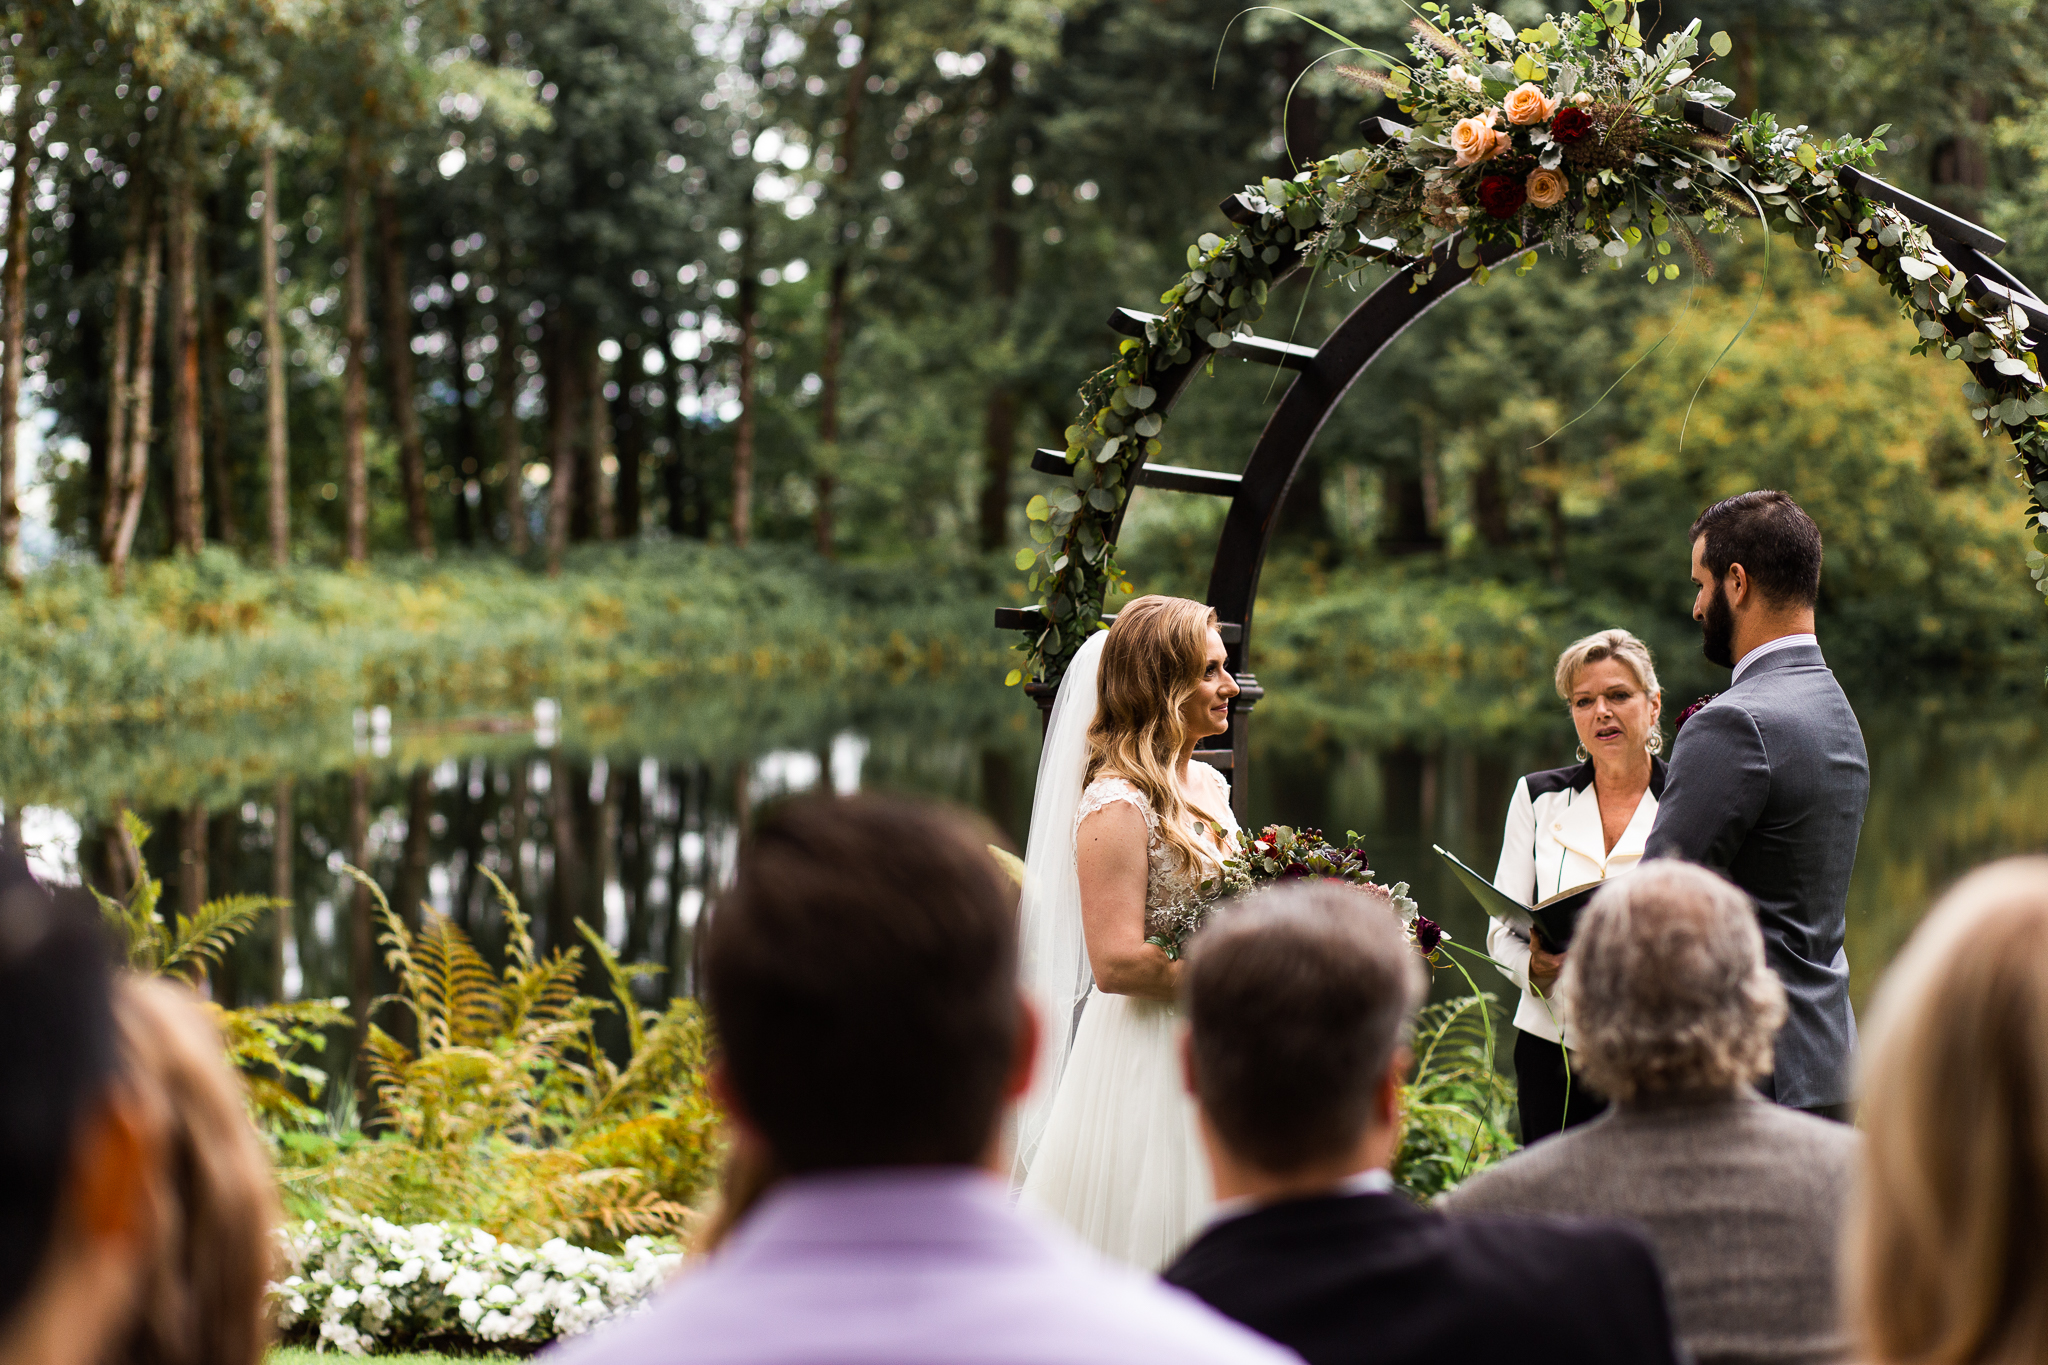 Alayna & Eric - wedding -  Bridal Veil Lakes, OR - Malina Rose Photography-20.jpg